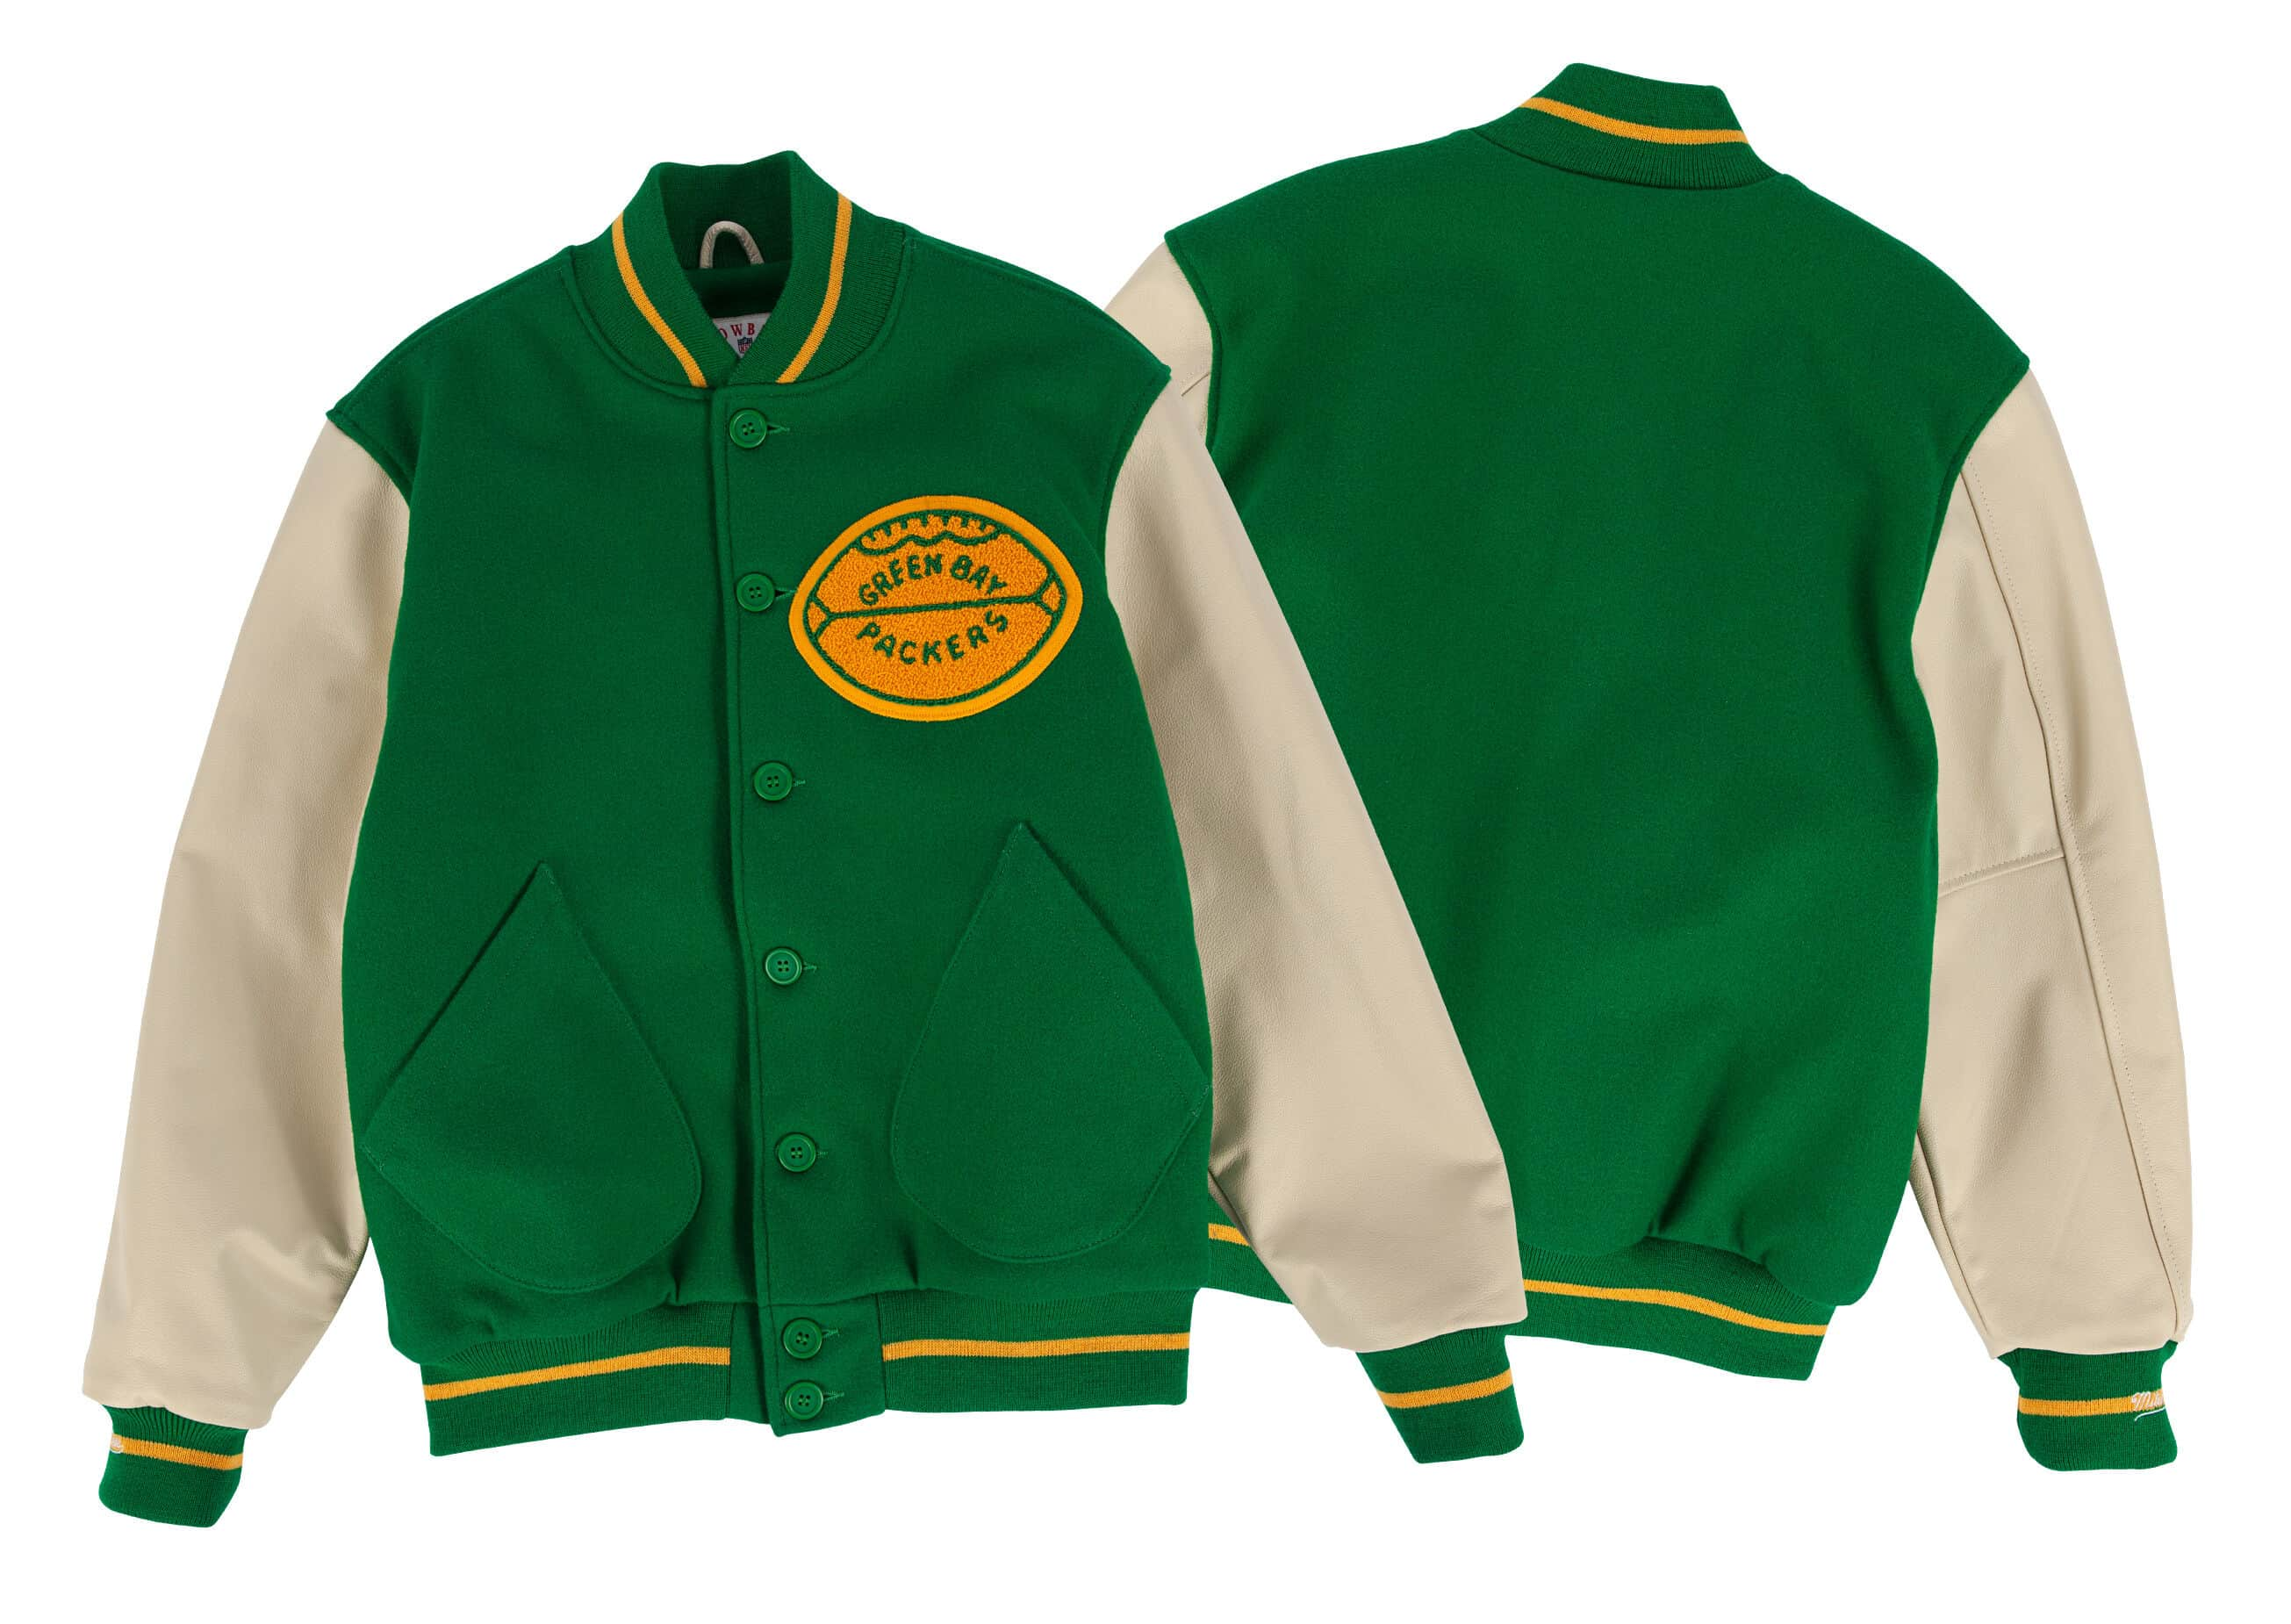 1965 Authentic Wool Jacket Green Bay Packers